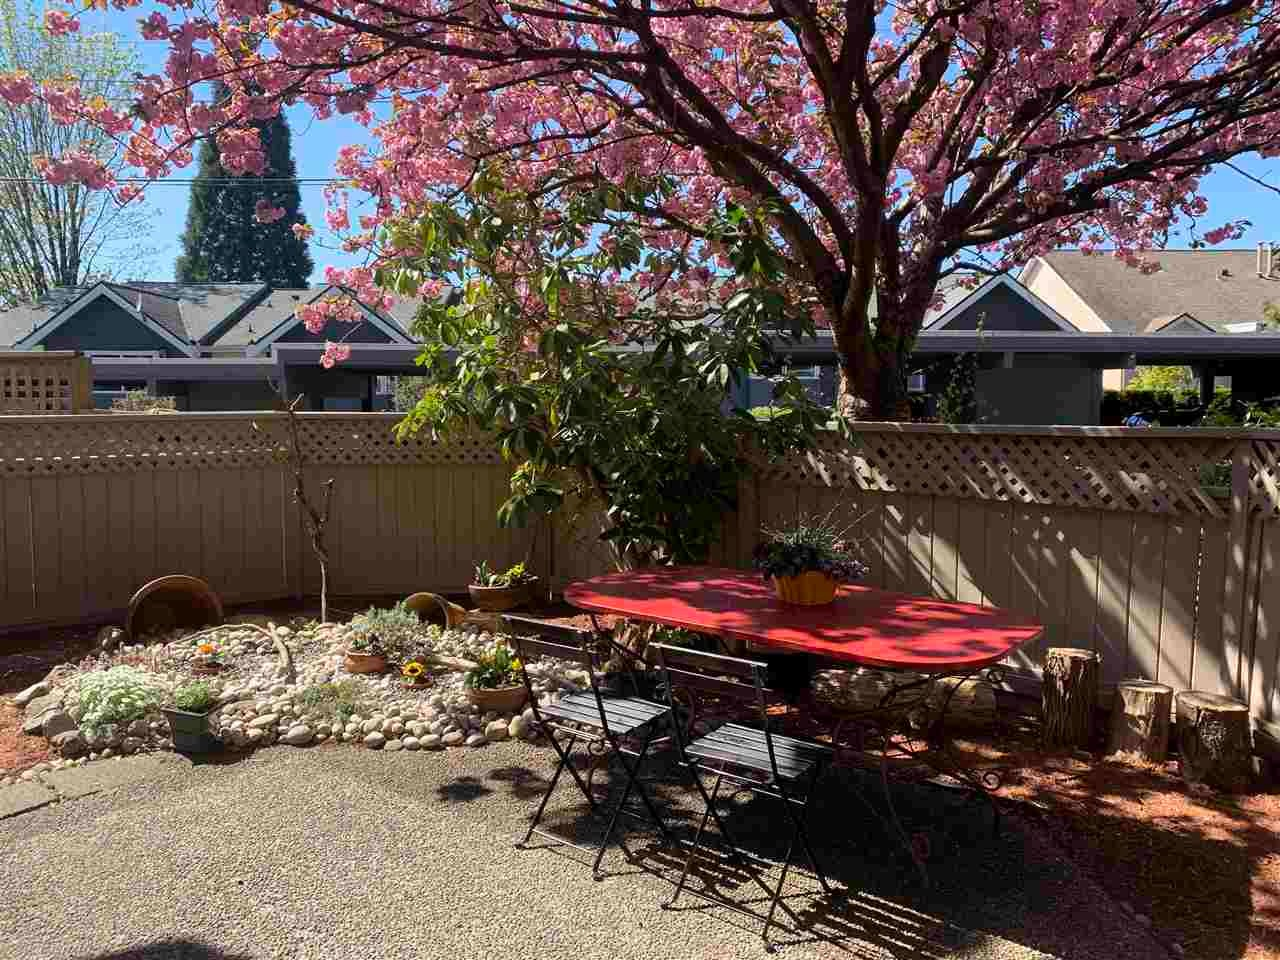 2 230 W 15TH STREET - Central Lonsdale Townhouse for sale, 3 Bedrooms (R2572749) - #4